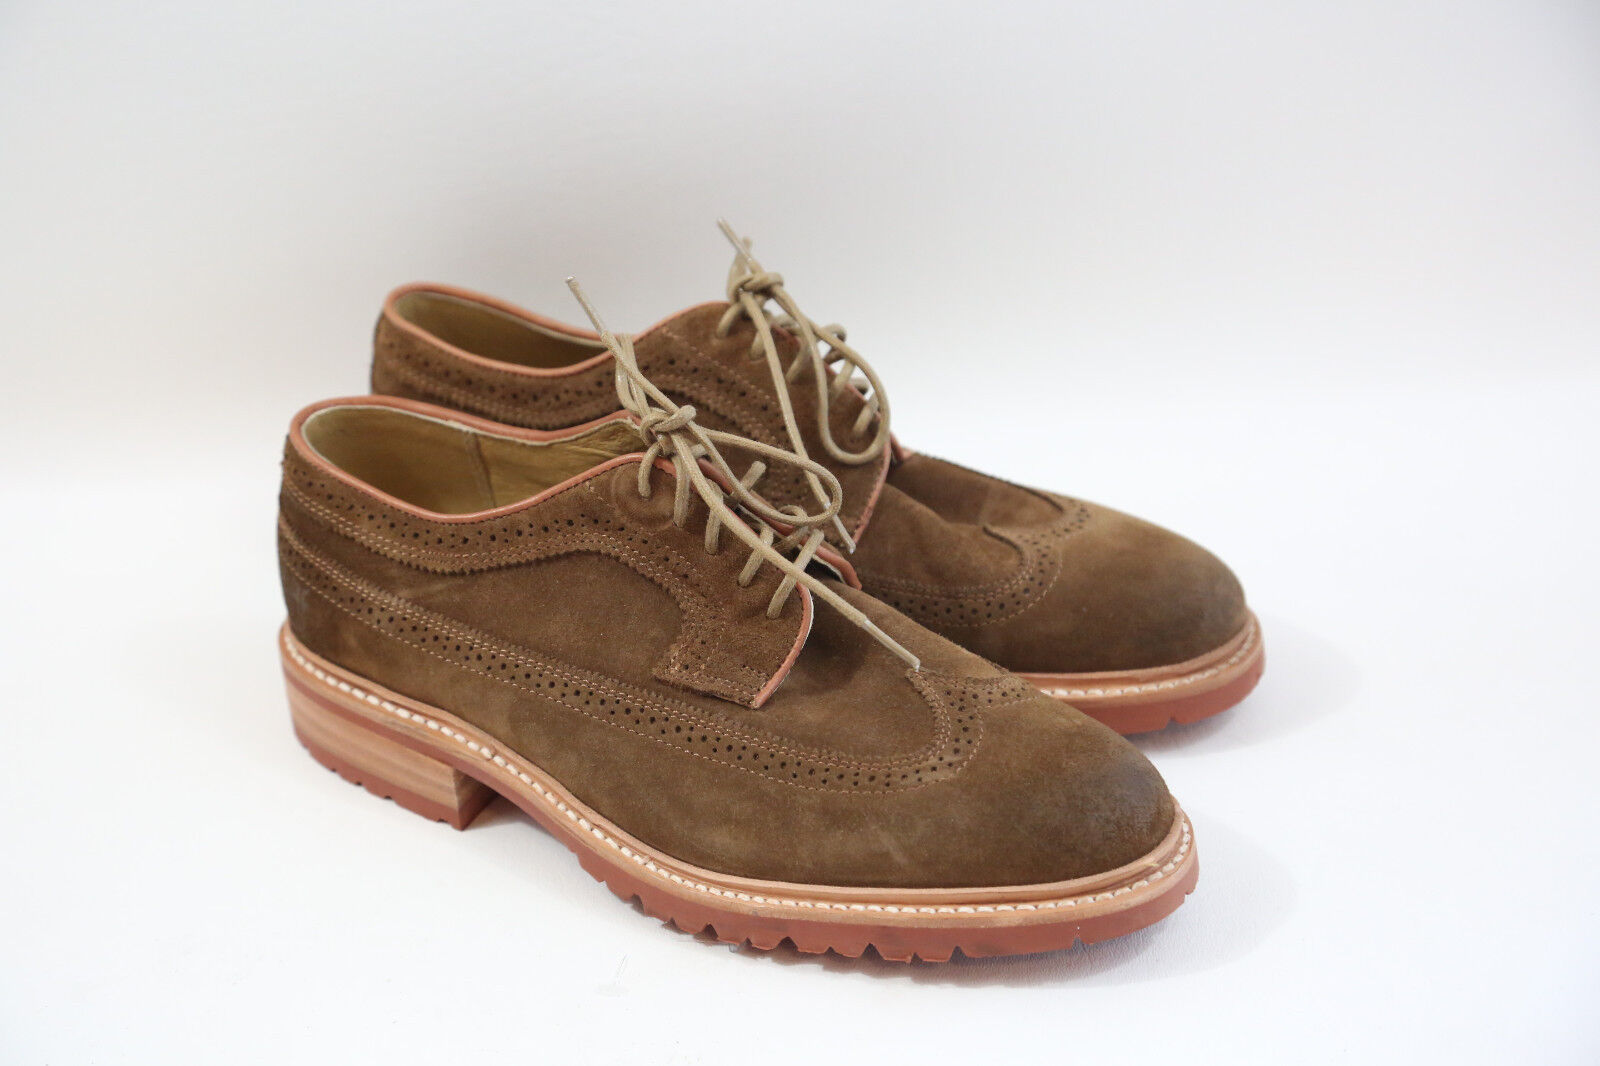 FRYE Men's Suede Wing Tip Oxford Shoes Size 8.5 D  MADE IN MEXICO